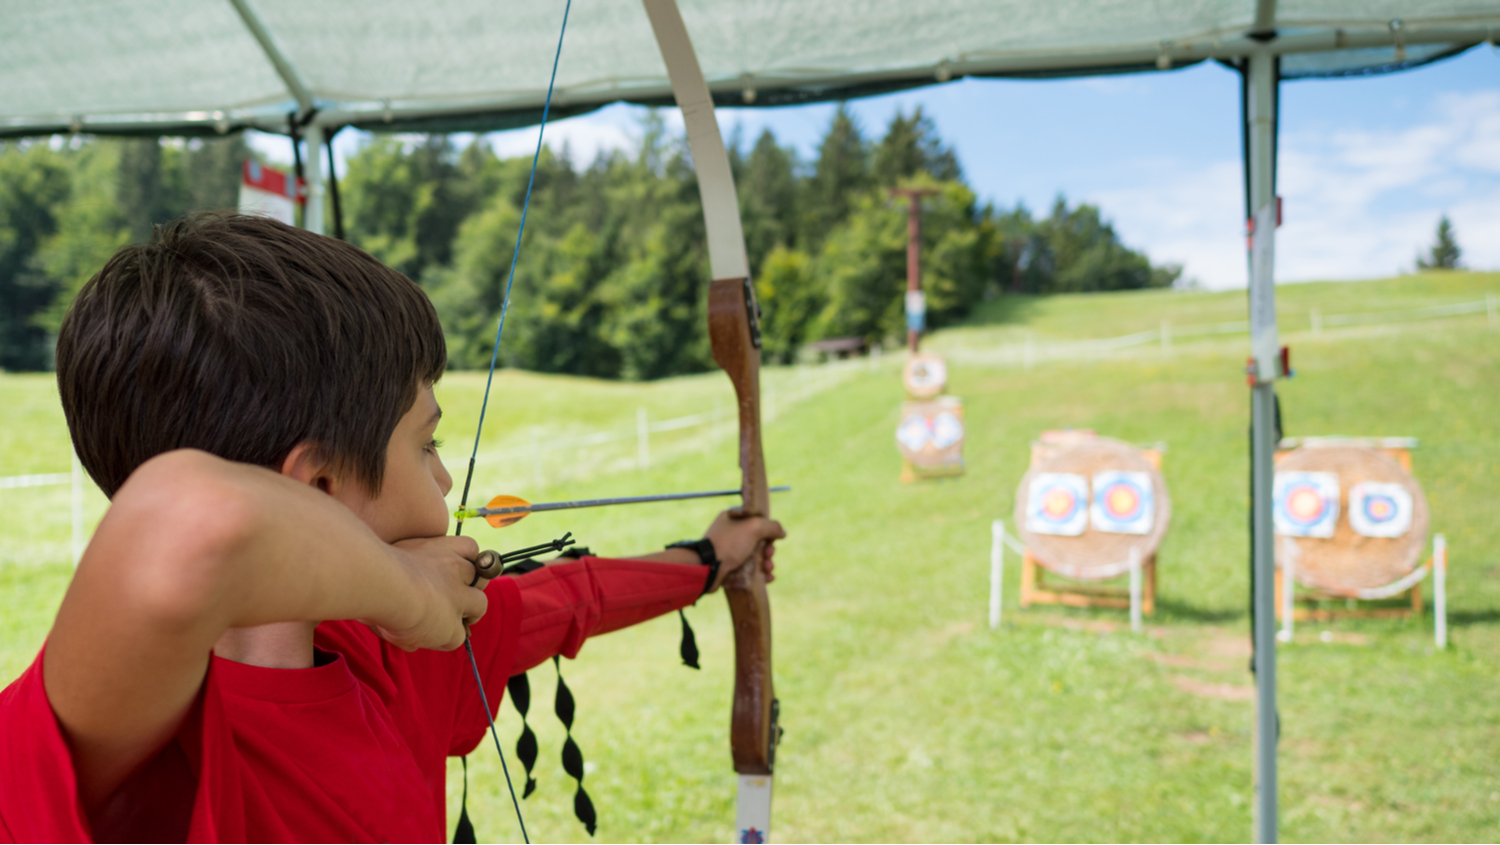 A young boy preparing to shoot a target with a bow and arrow